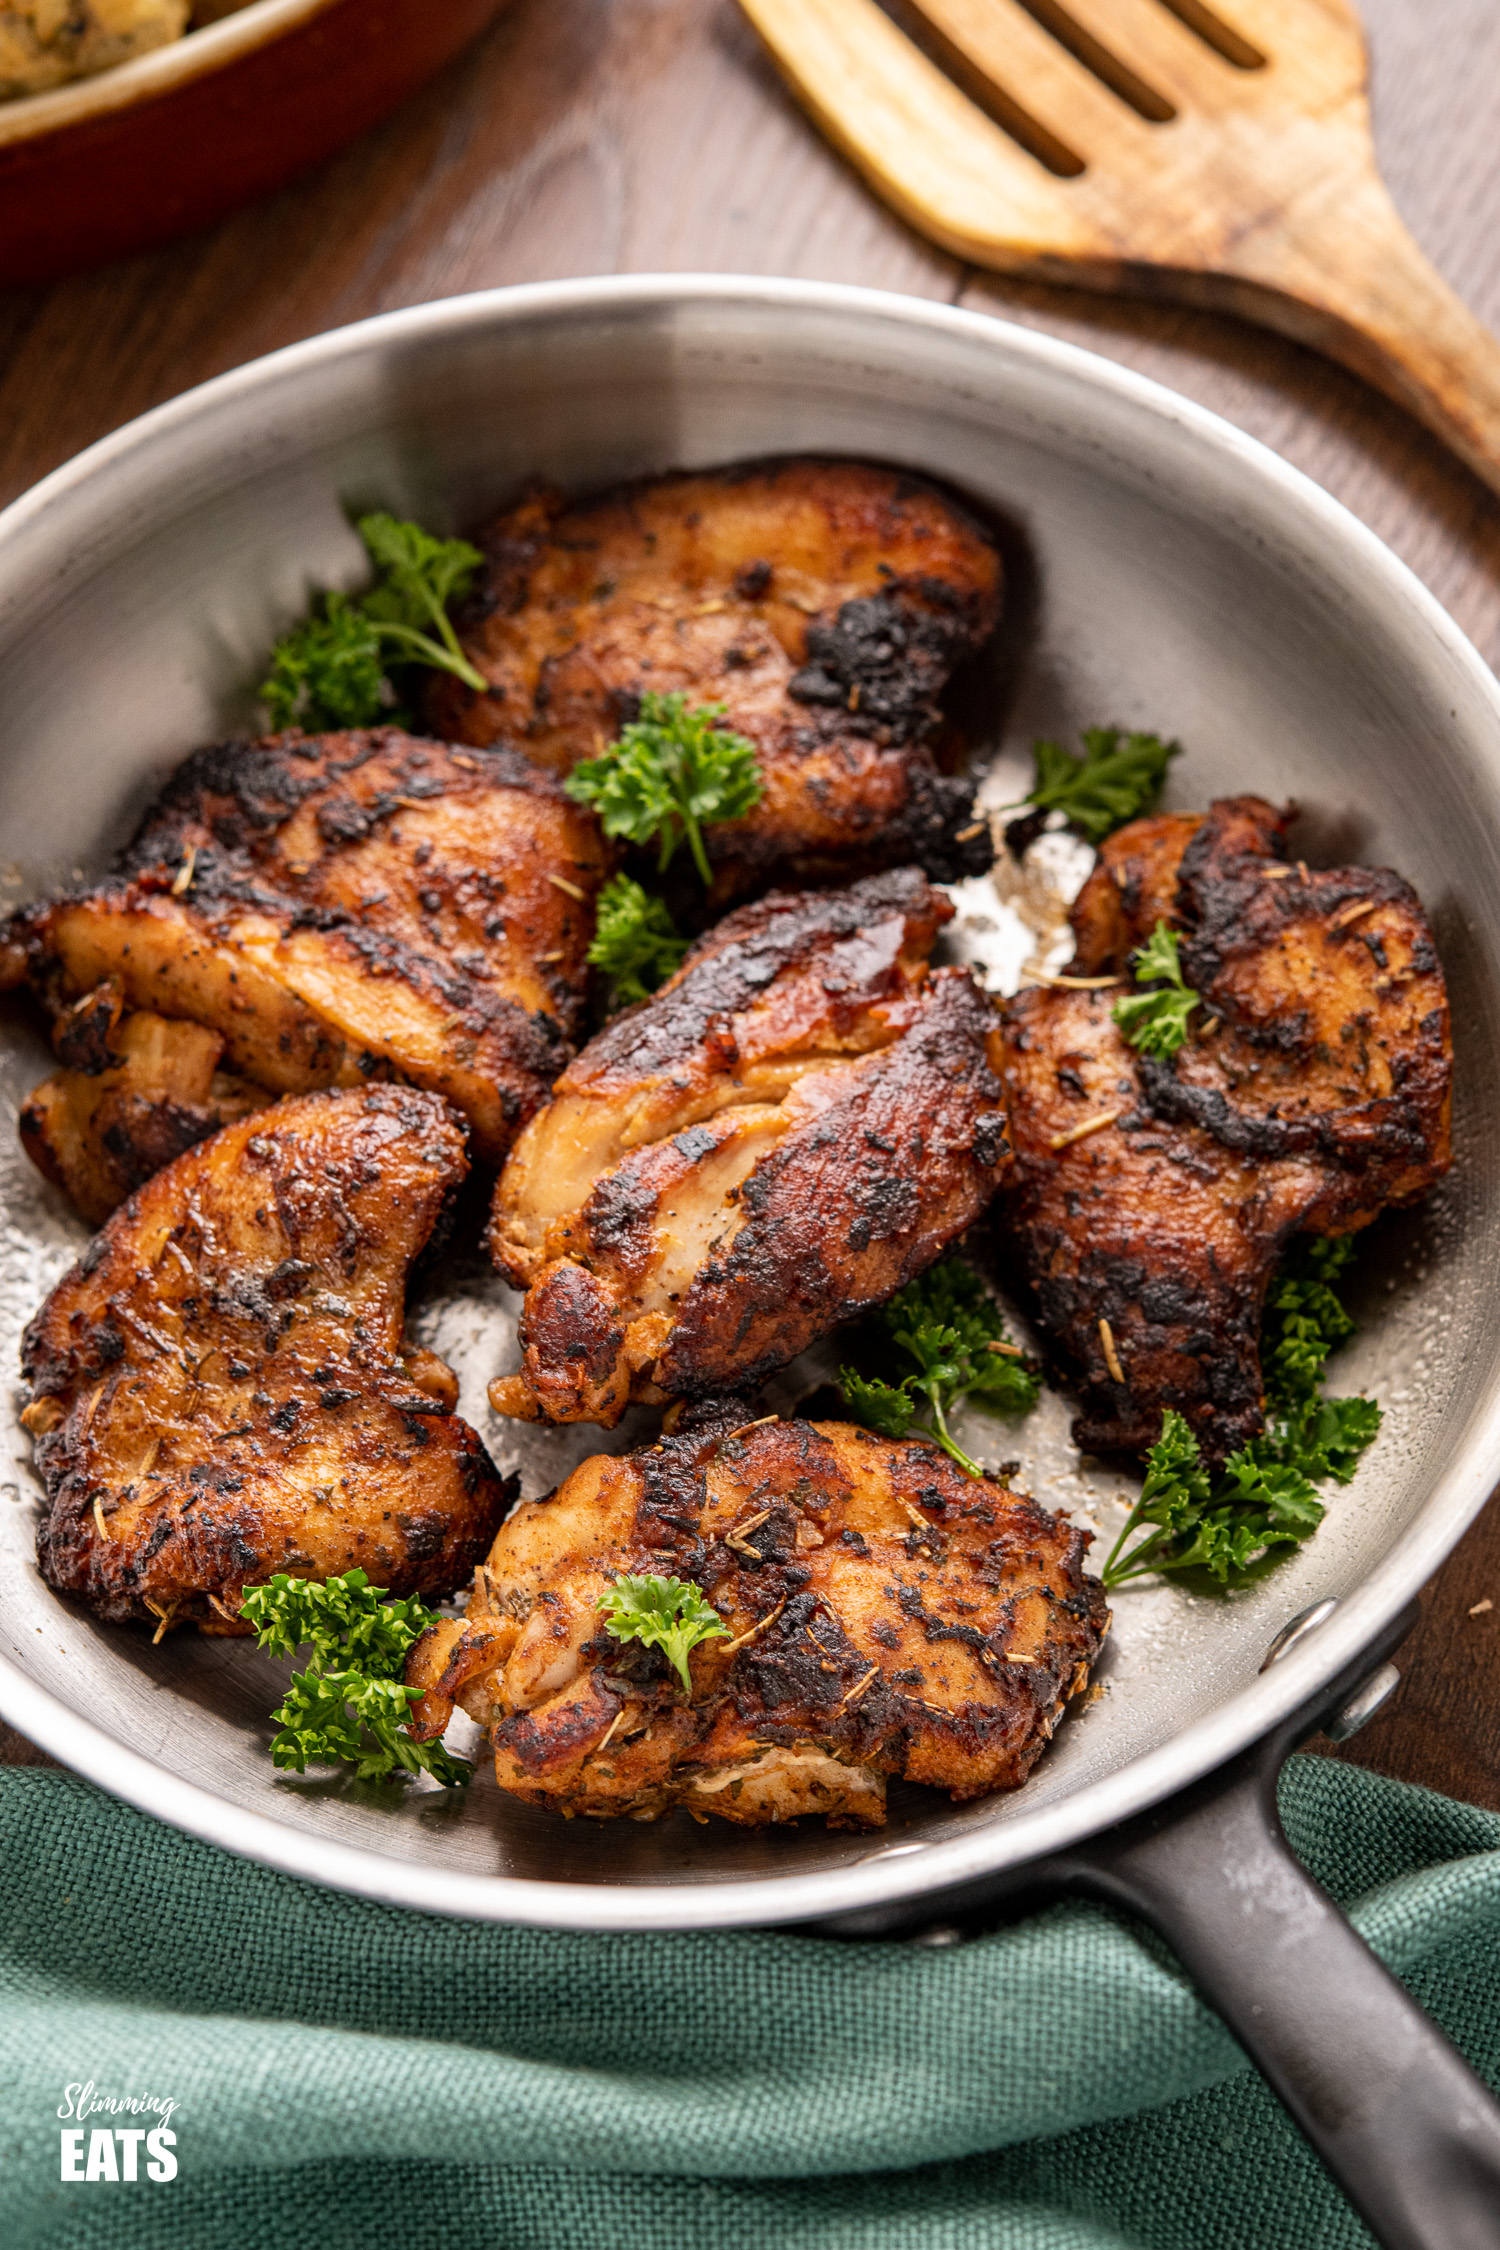 Seasoned Chicken in frying pan garnished with parsley, wooden spatula to the top right